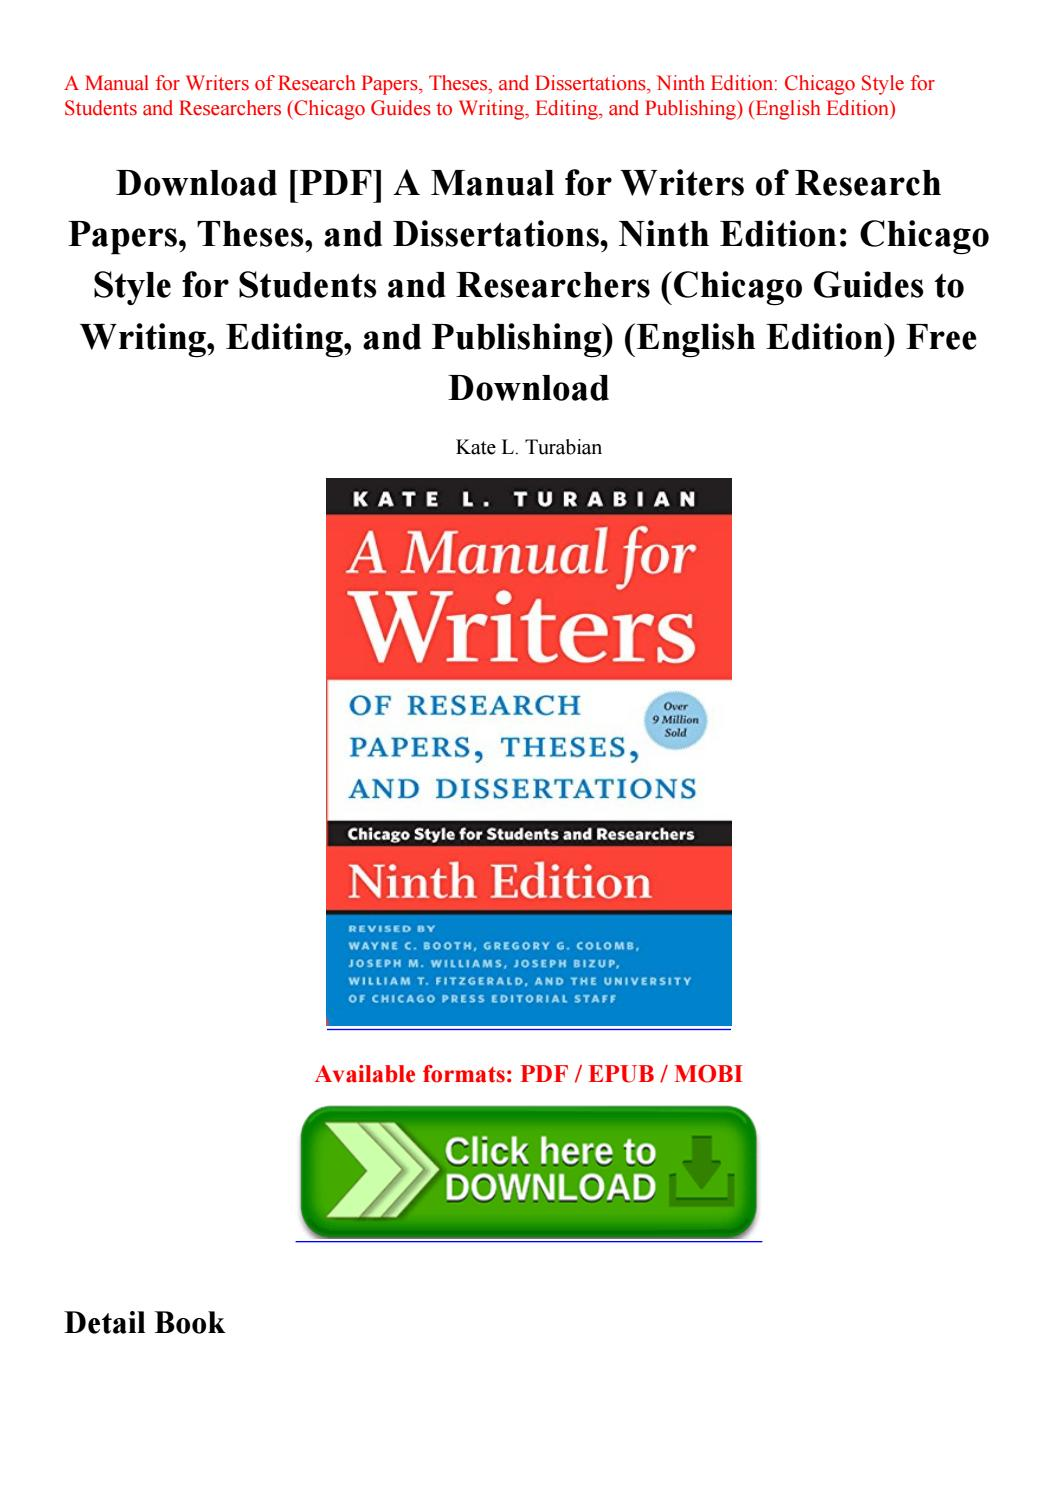 003 Manual For Writers Of Research Papers Theses And Dissertations 9th Edition Pdf Paper Page 1 Wonderful A Full